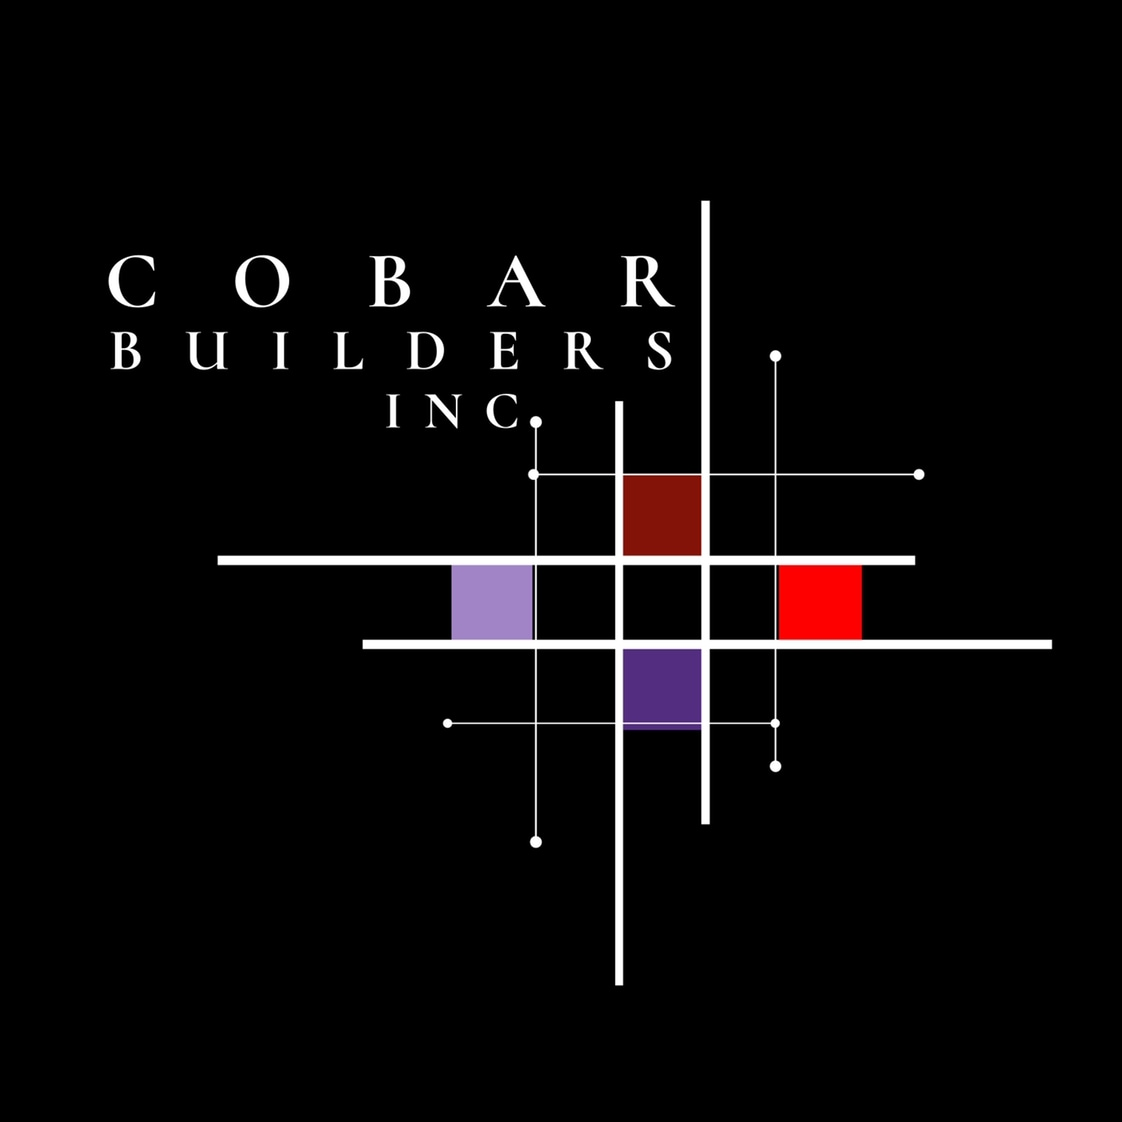 Cobar Builders Inc.